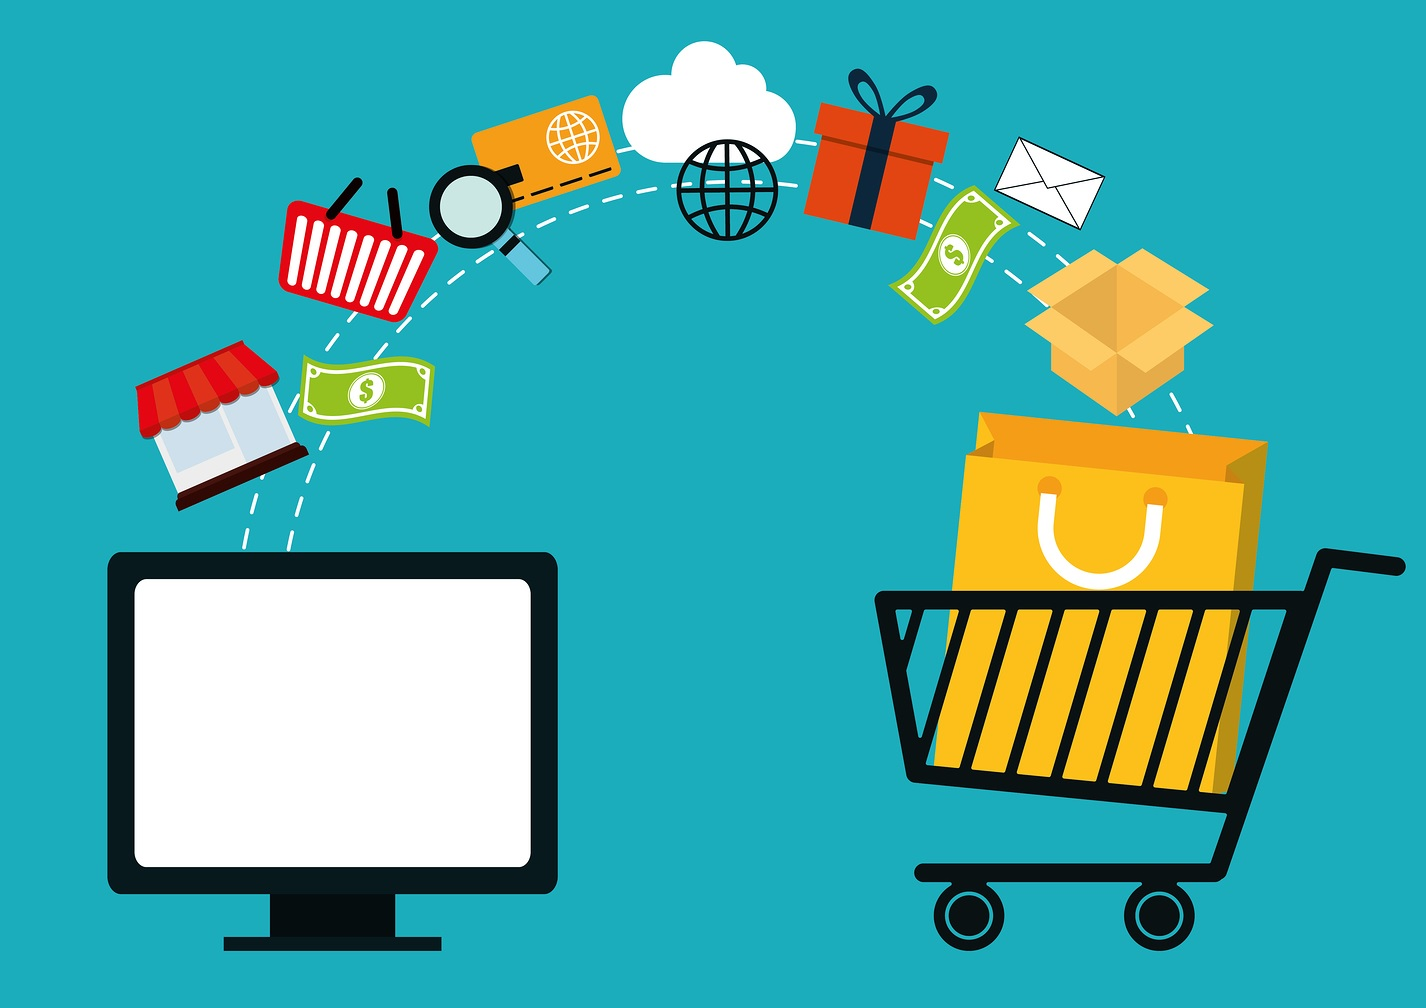 T-online.e Ecommerce Brand Times Brand Times Is The Number One Platform